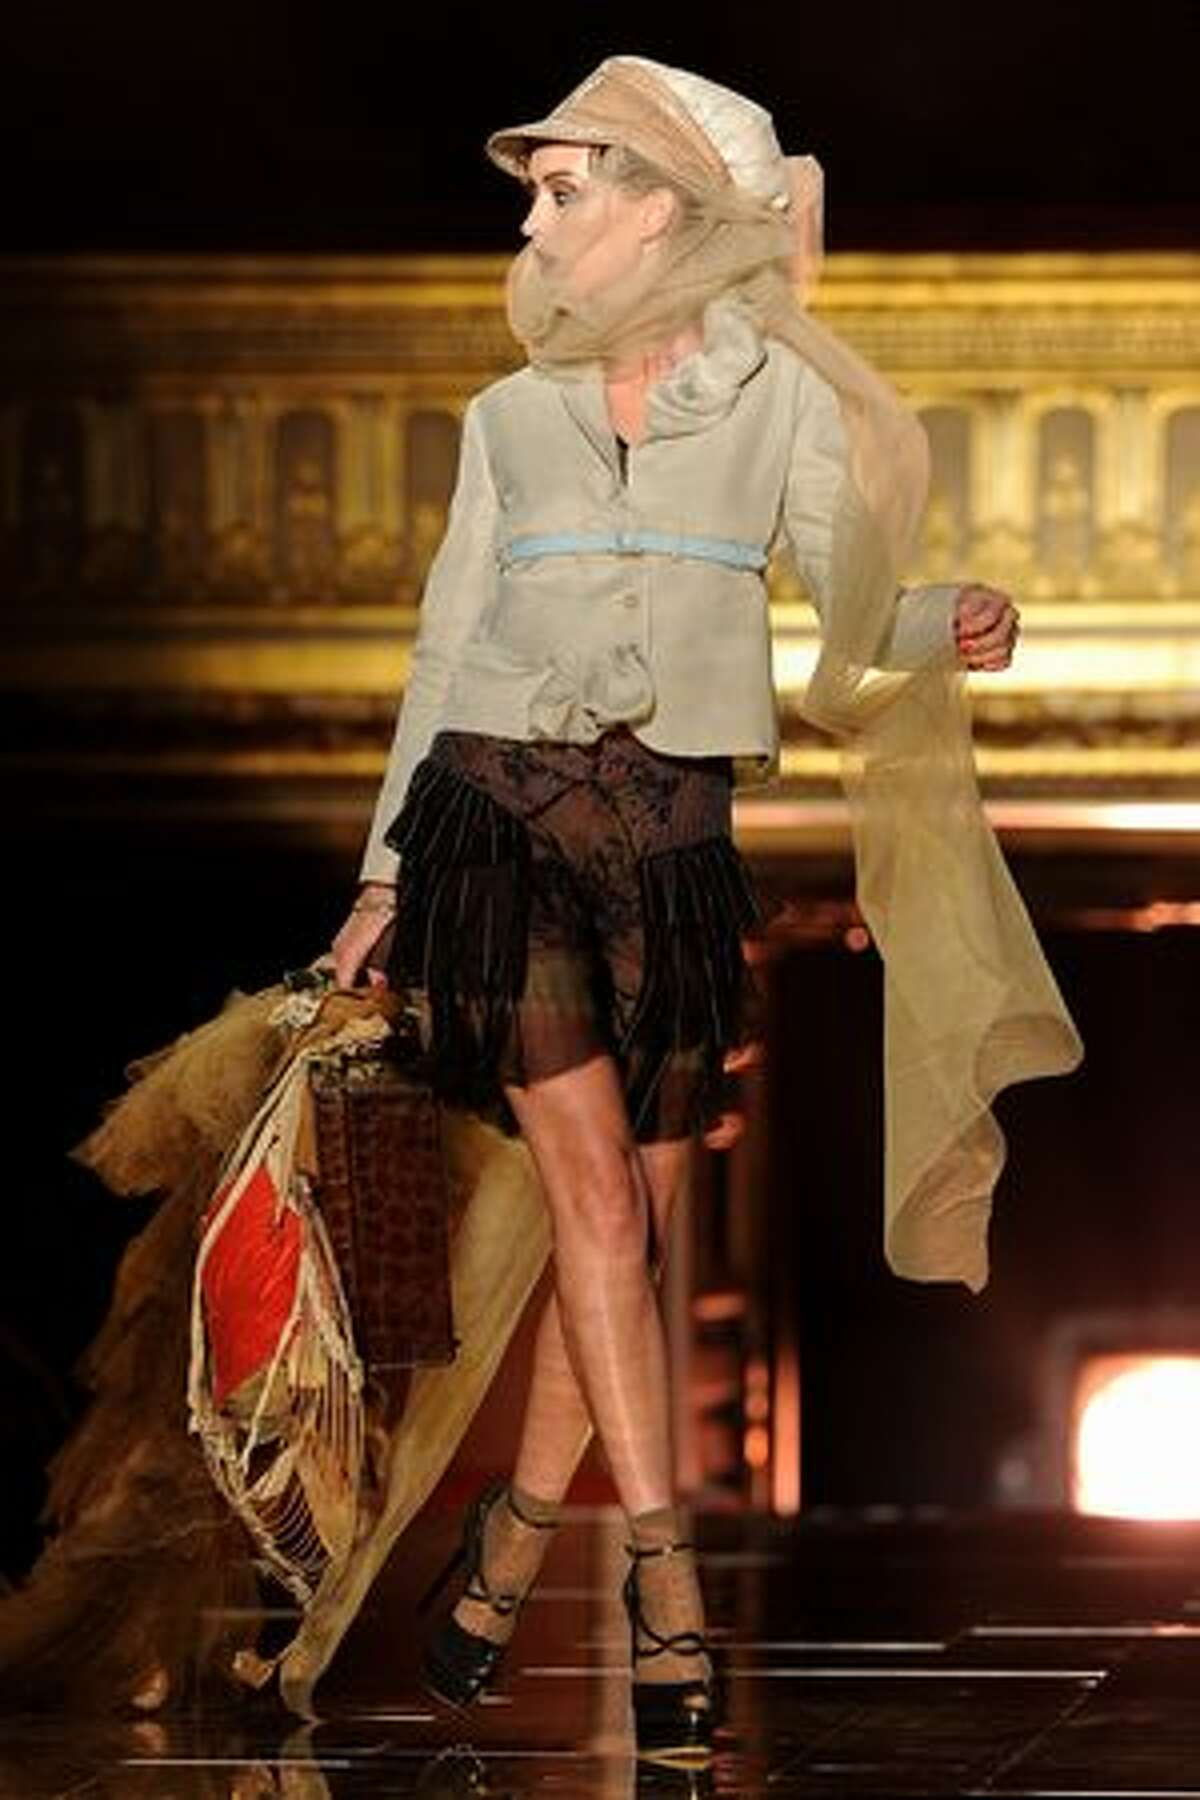 A model walks the runway during the John Galliano ready-to-wear spring/summer 2011 show during Paris Fashion Week at Opera Comique in Paris on Sunday, Oct. 3, 2010.